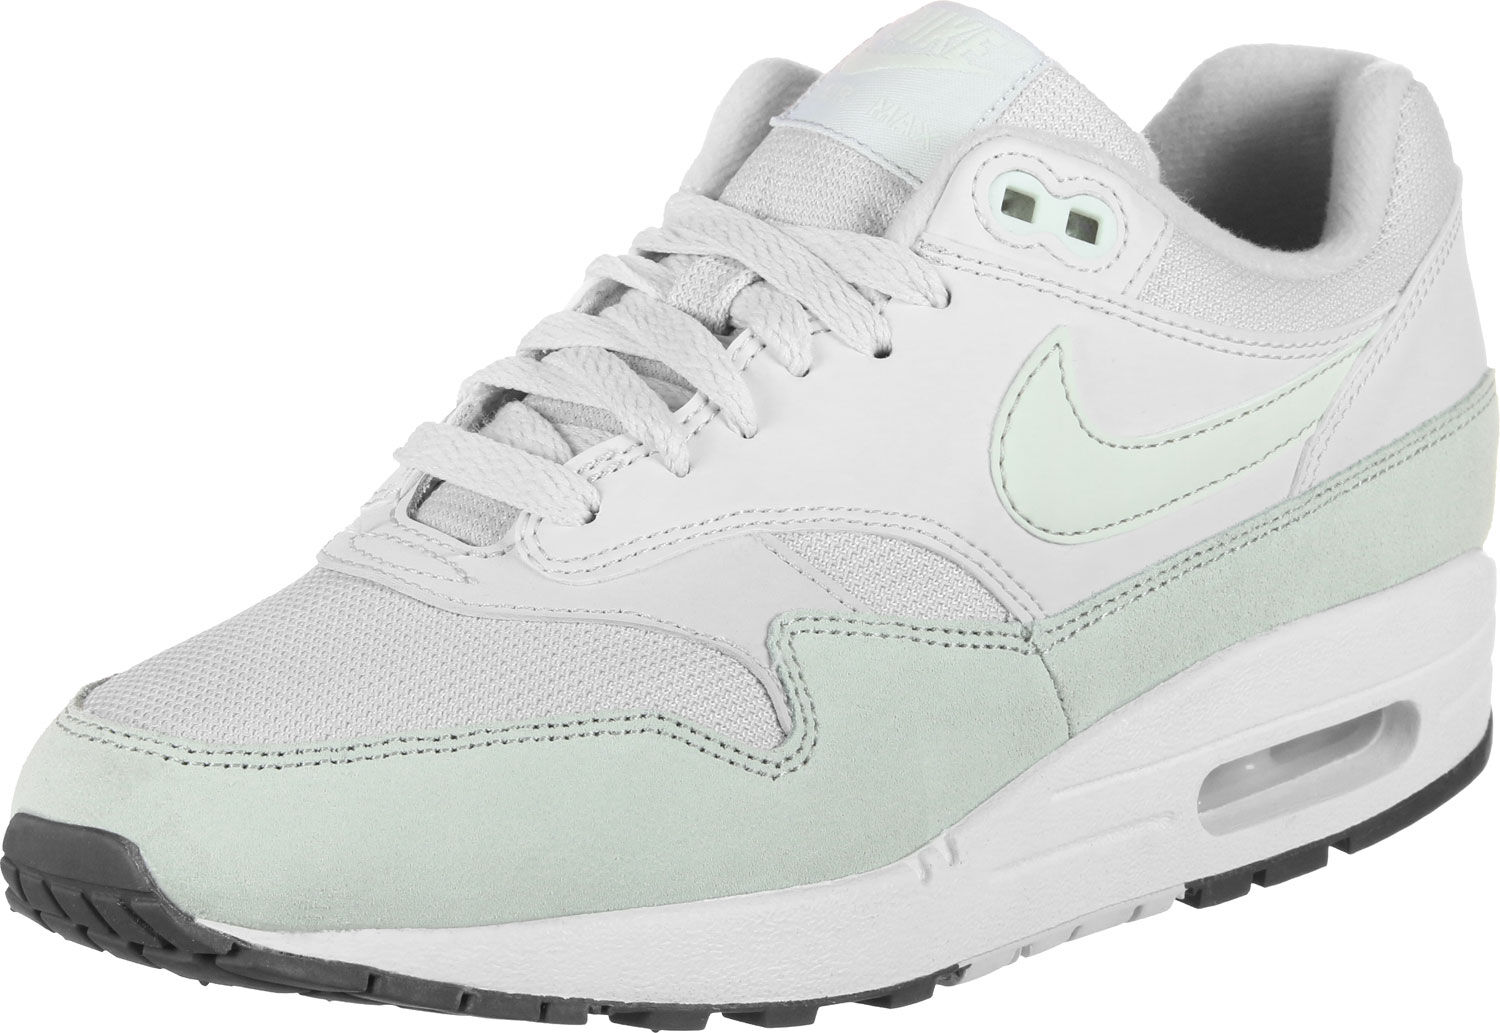 on feet images of half off best prices Air Max 1 W